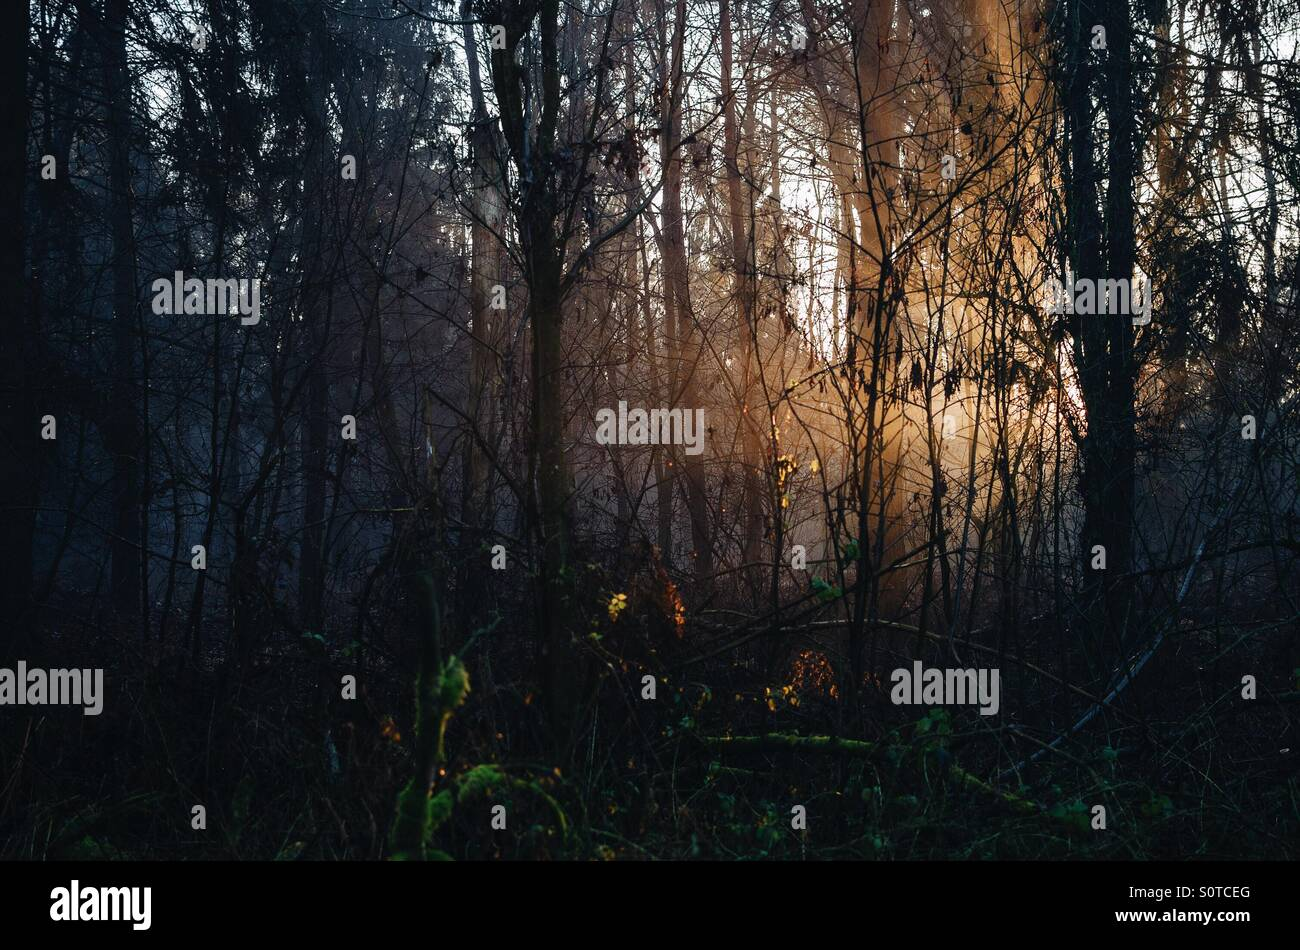 Light. In the forest - Stock Image